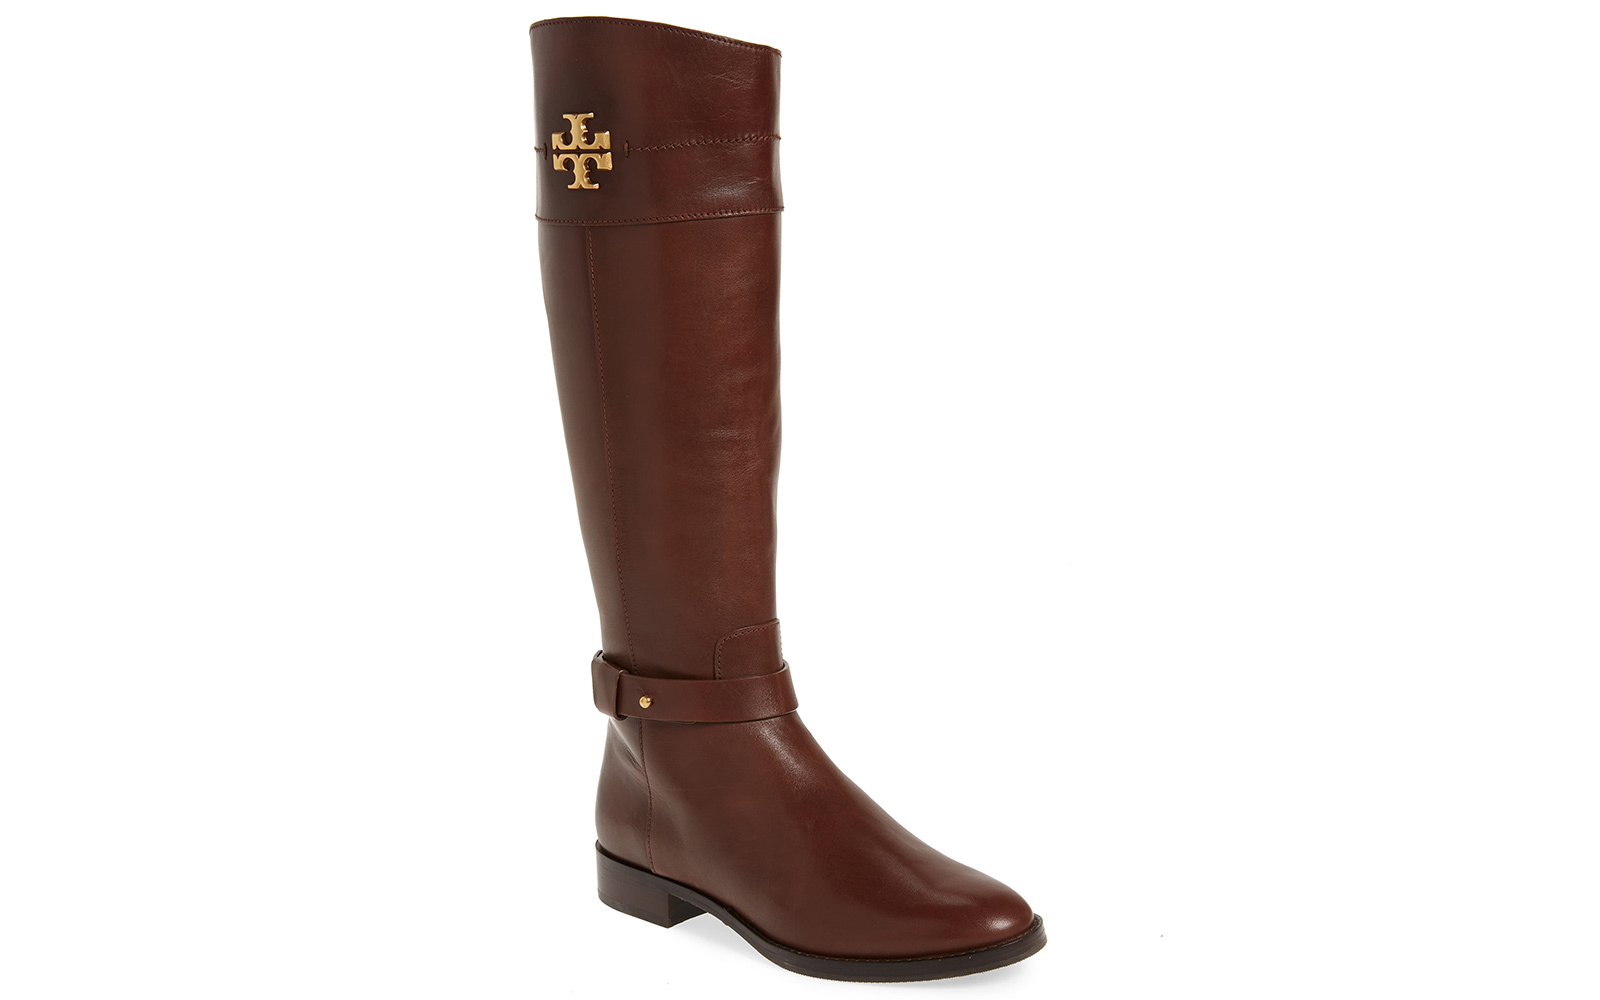 Tory Burch Everly Knee High Boot